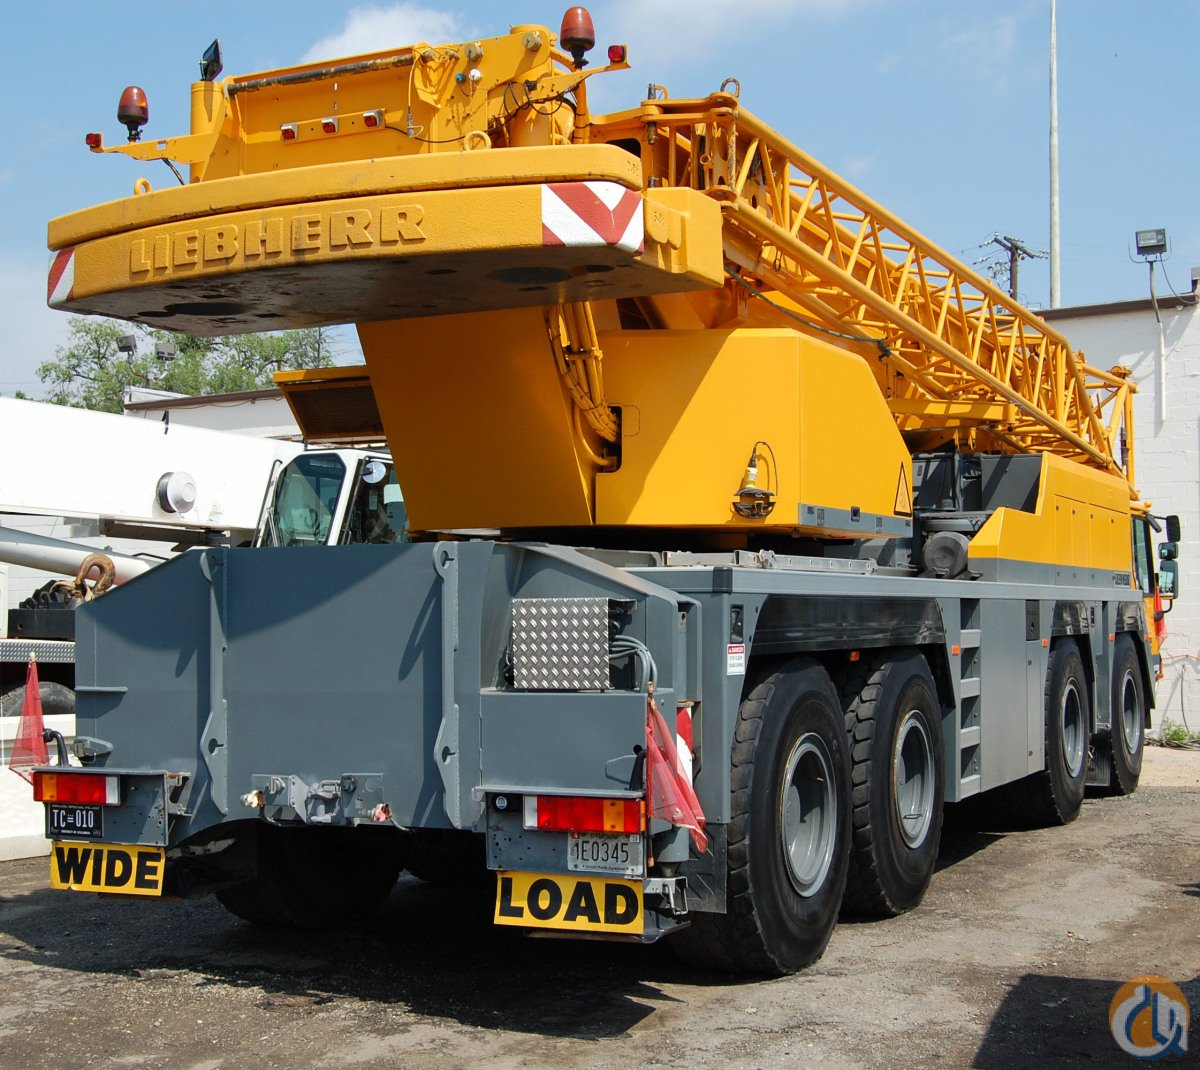 LIEBHERR LTM-1080L LOW HOURS LOW MILES Crane for Sale in Stamford Connecticut on CraneNetwork.com